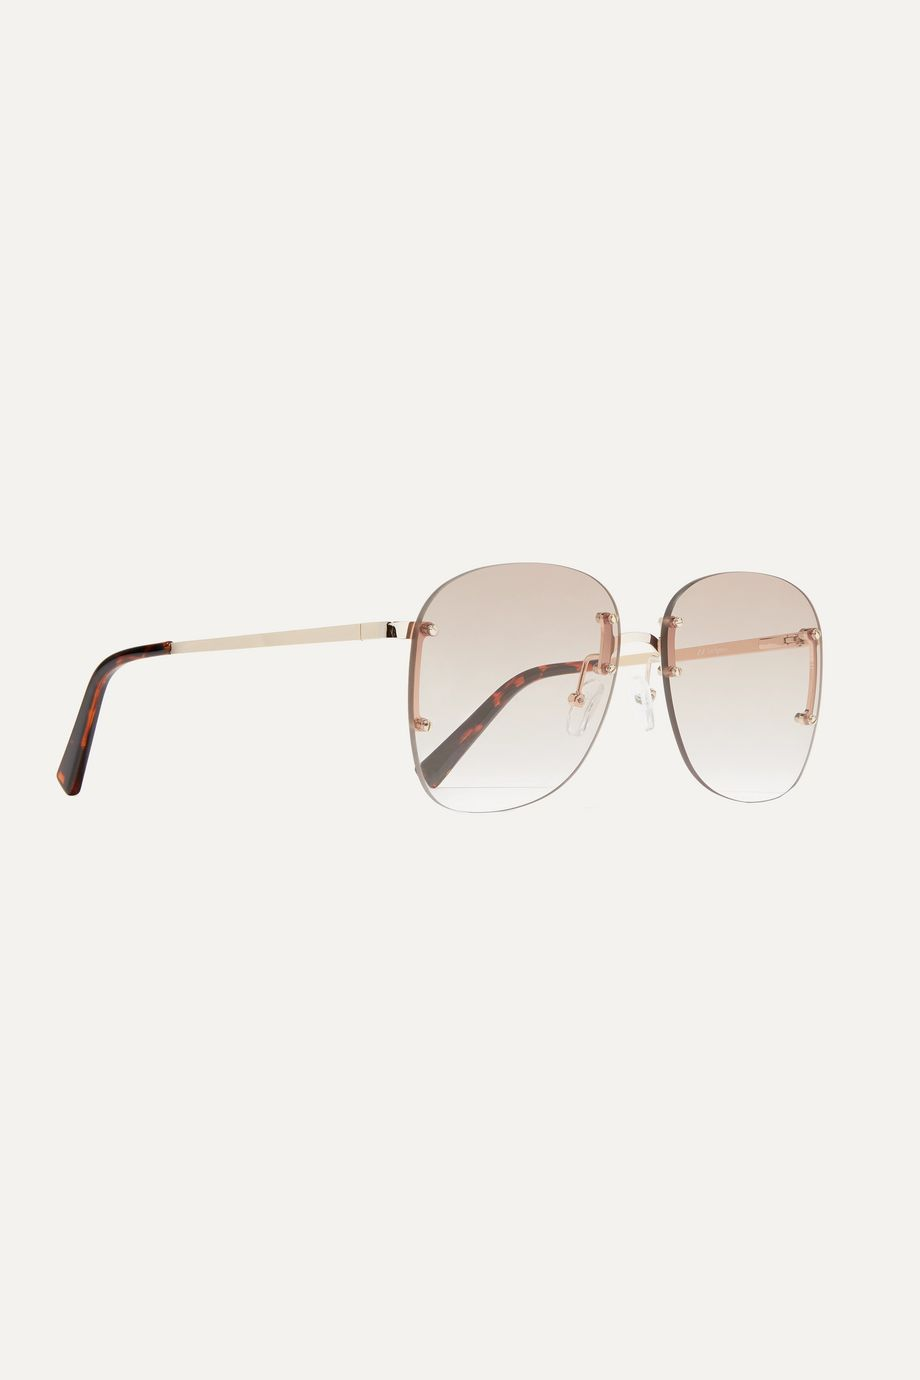 Le Specs Skyline square-frame gold-tone sunglasses